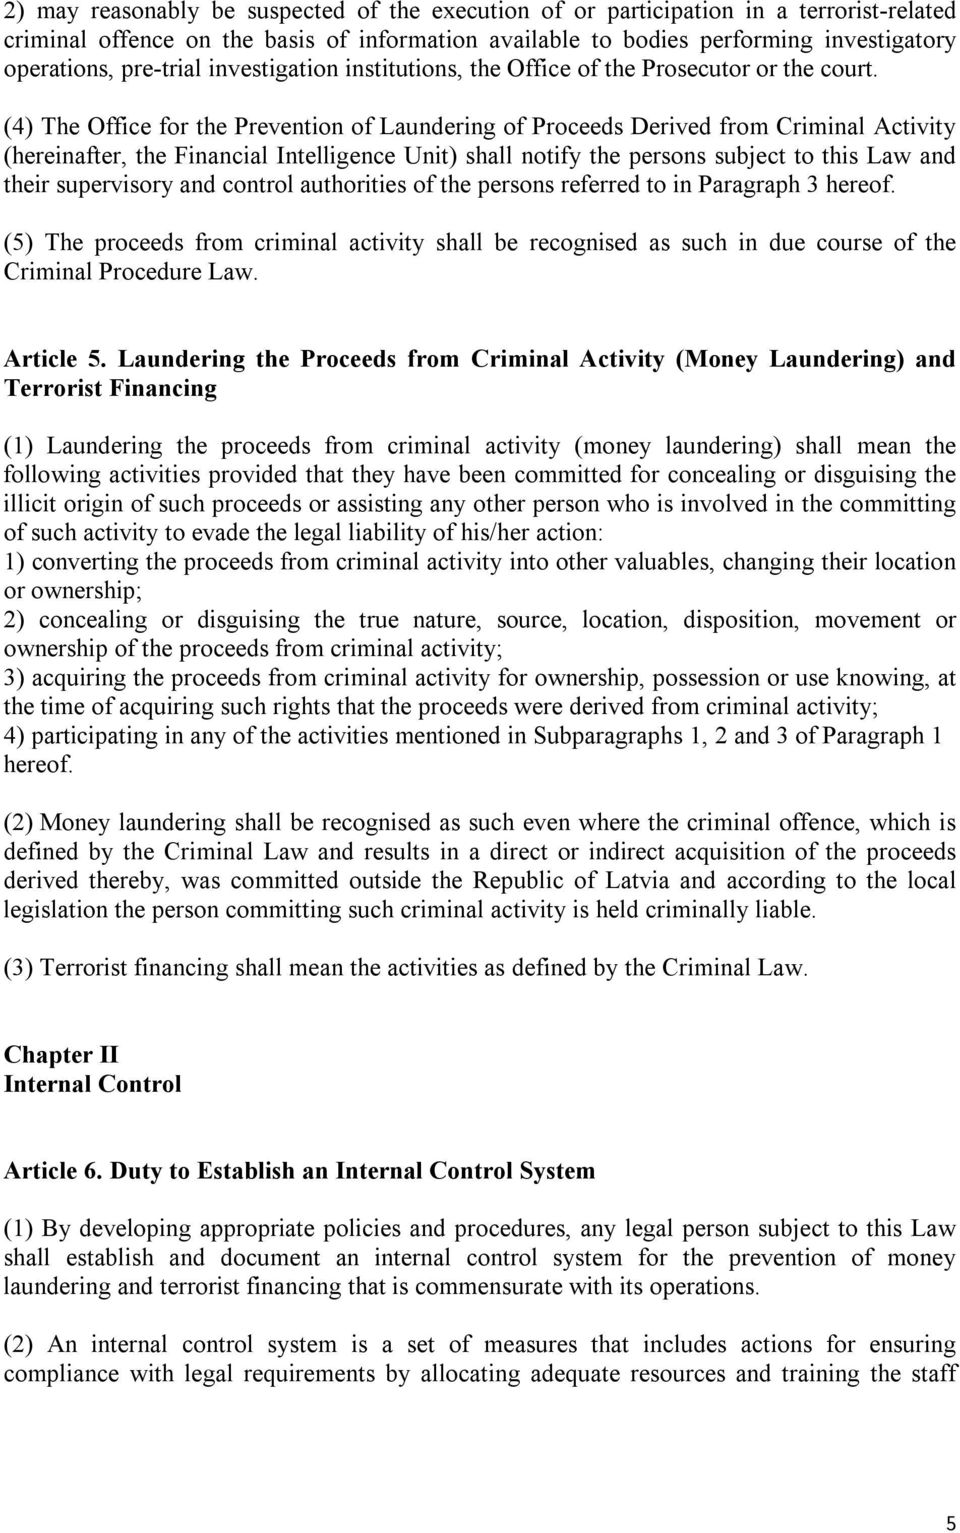 (4) The Office for the Prevention of Laundering of Proceeds Derived from Criminal Activity (hereinafter, the Financial Intelligence Unit) shall notify the persons subject to this Law and their